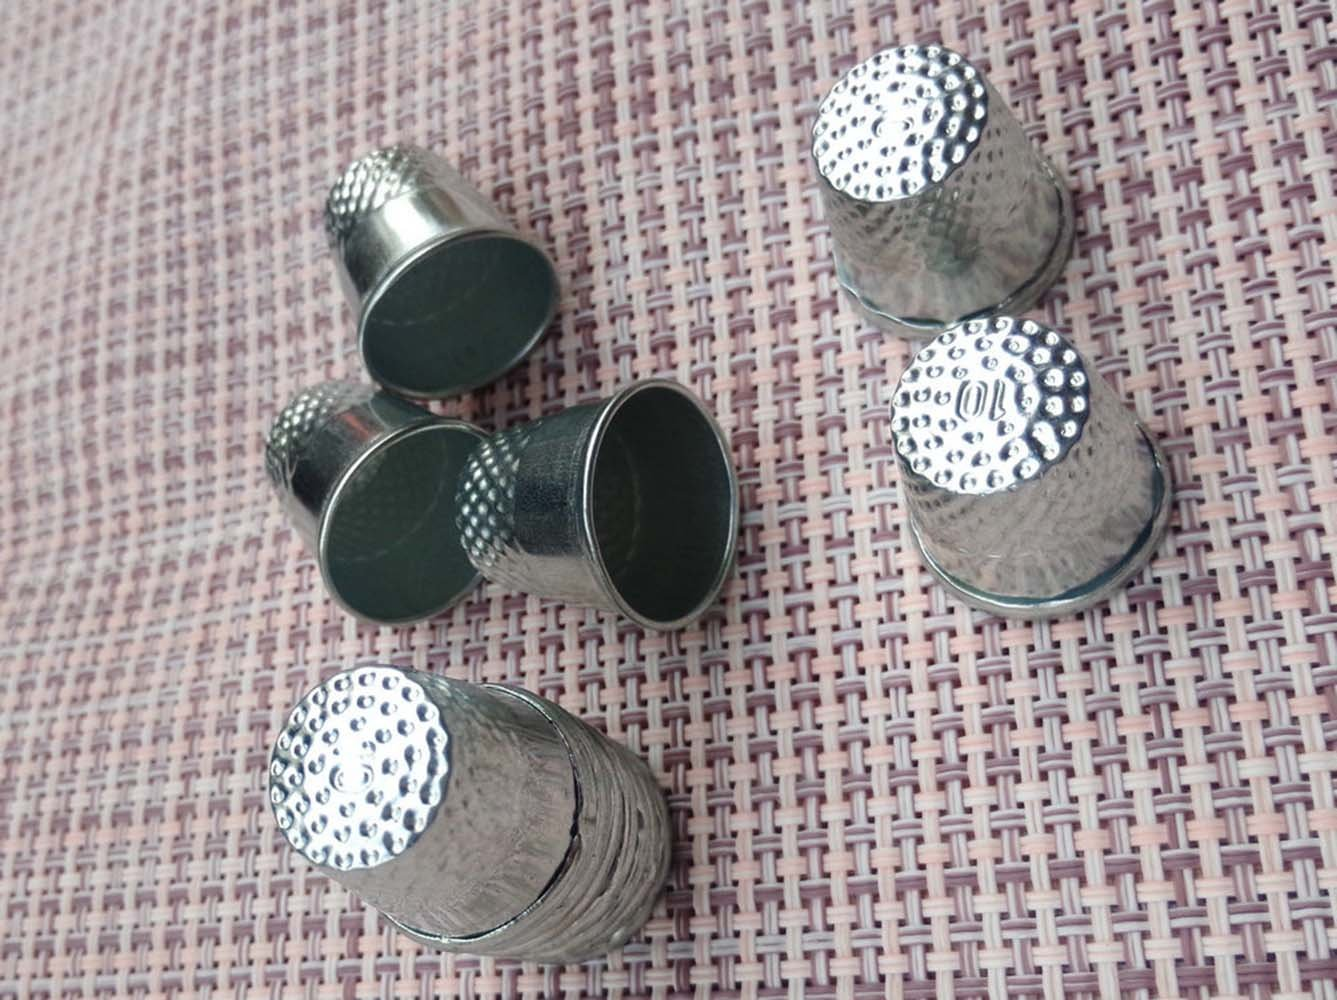 Approx Size Sewing Thimble :19mm x 18mm LGEGE 30PCs silver toned Vintage DIY Crafts Metal Sewing Thimbles